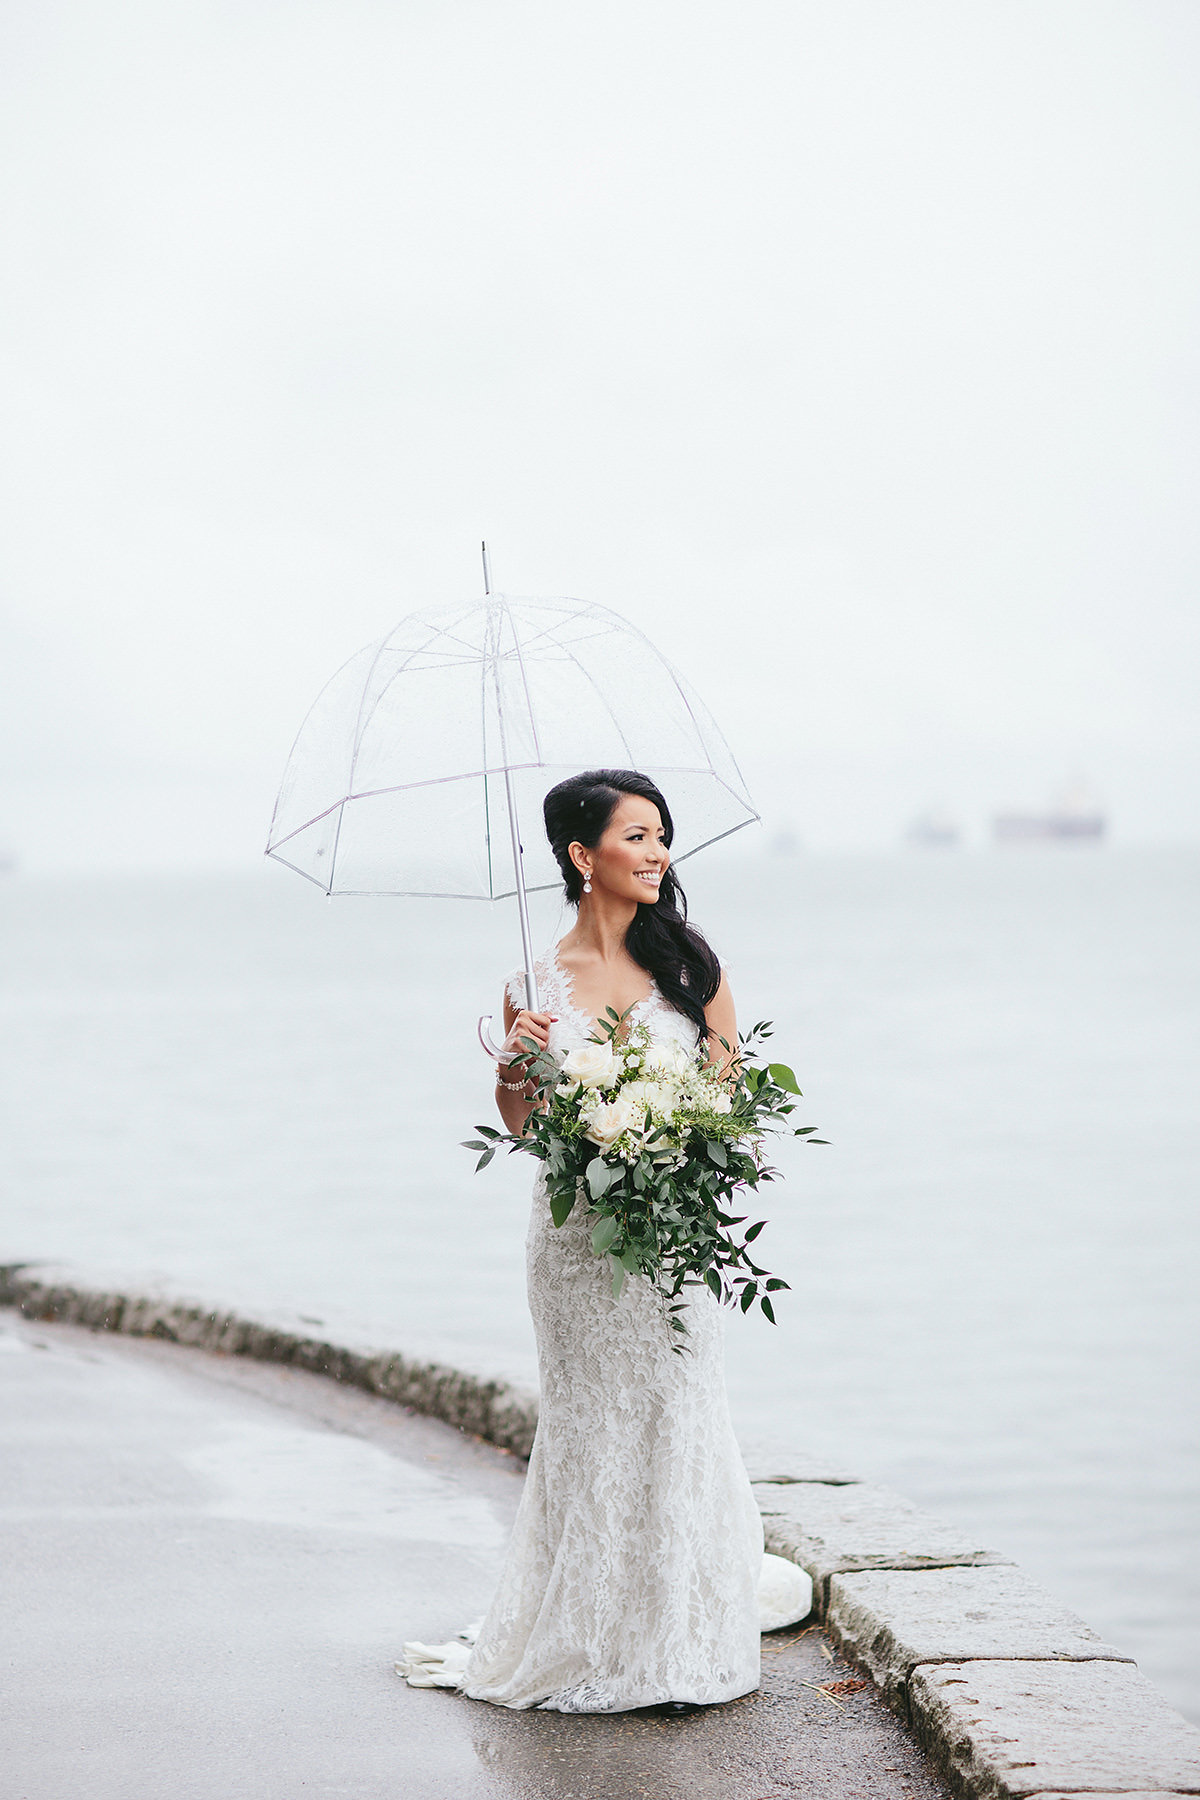 Vancouver Rain, Vancouver Bride featring Jewelry by Elsa Corsi